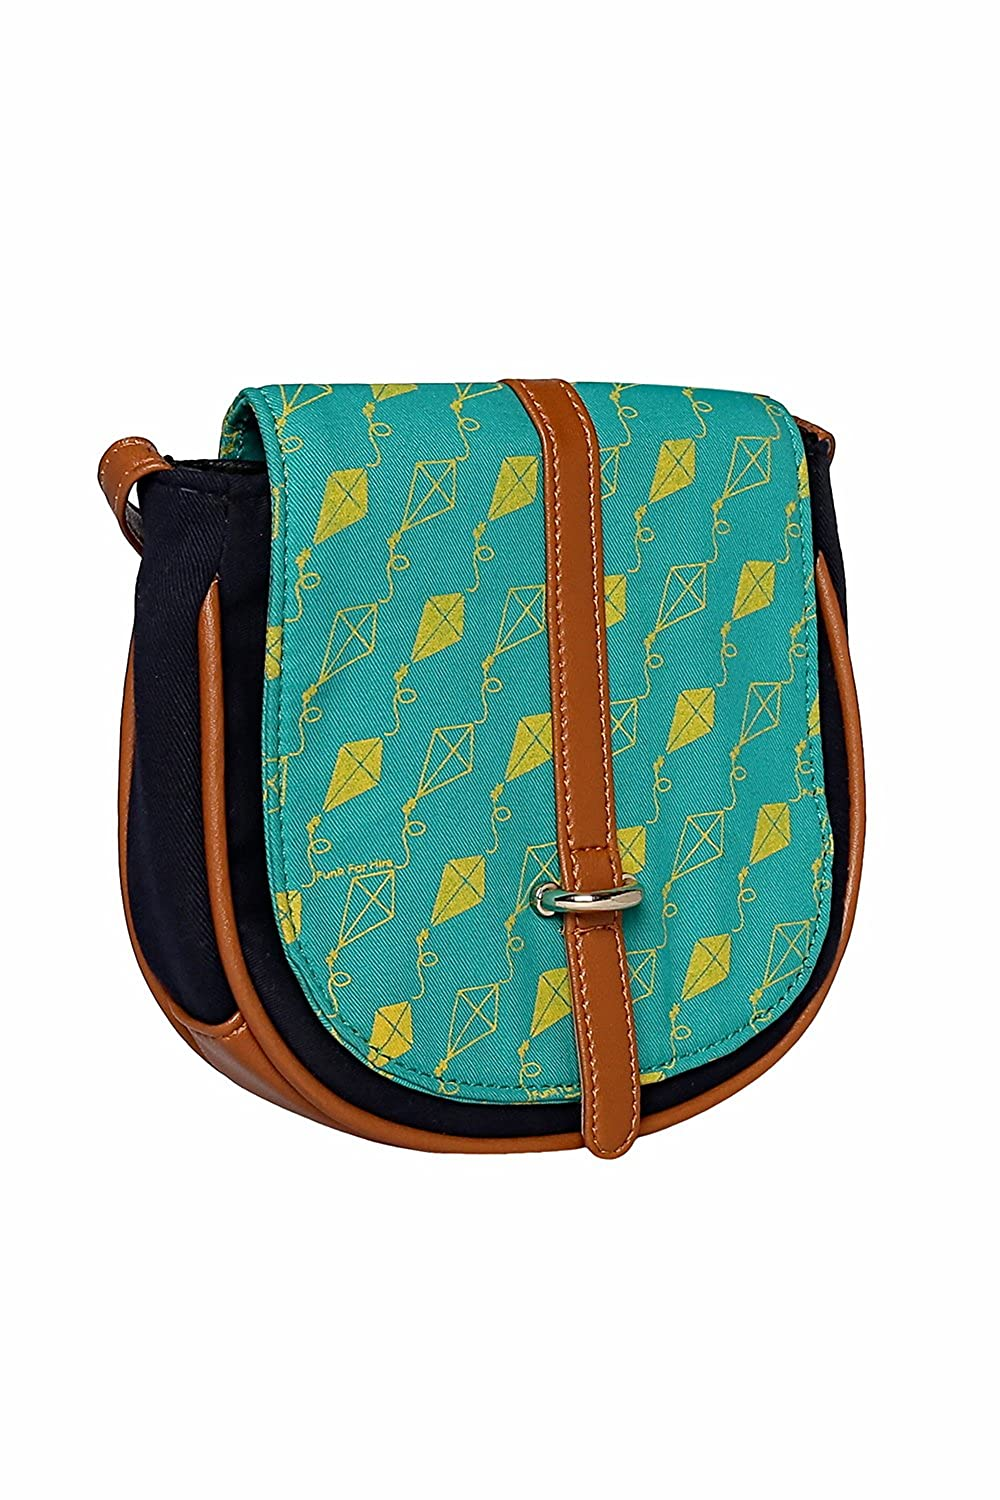 dad6644645c8 Funk For Hire Women Cotton Canvas Kite printed Flap Mini Sling Bag  (Turquoise   Navy Blue)  Amazon.in  Clothing   Accessories